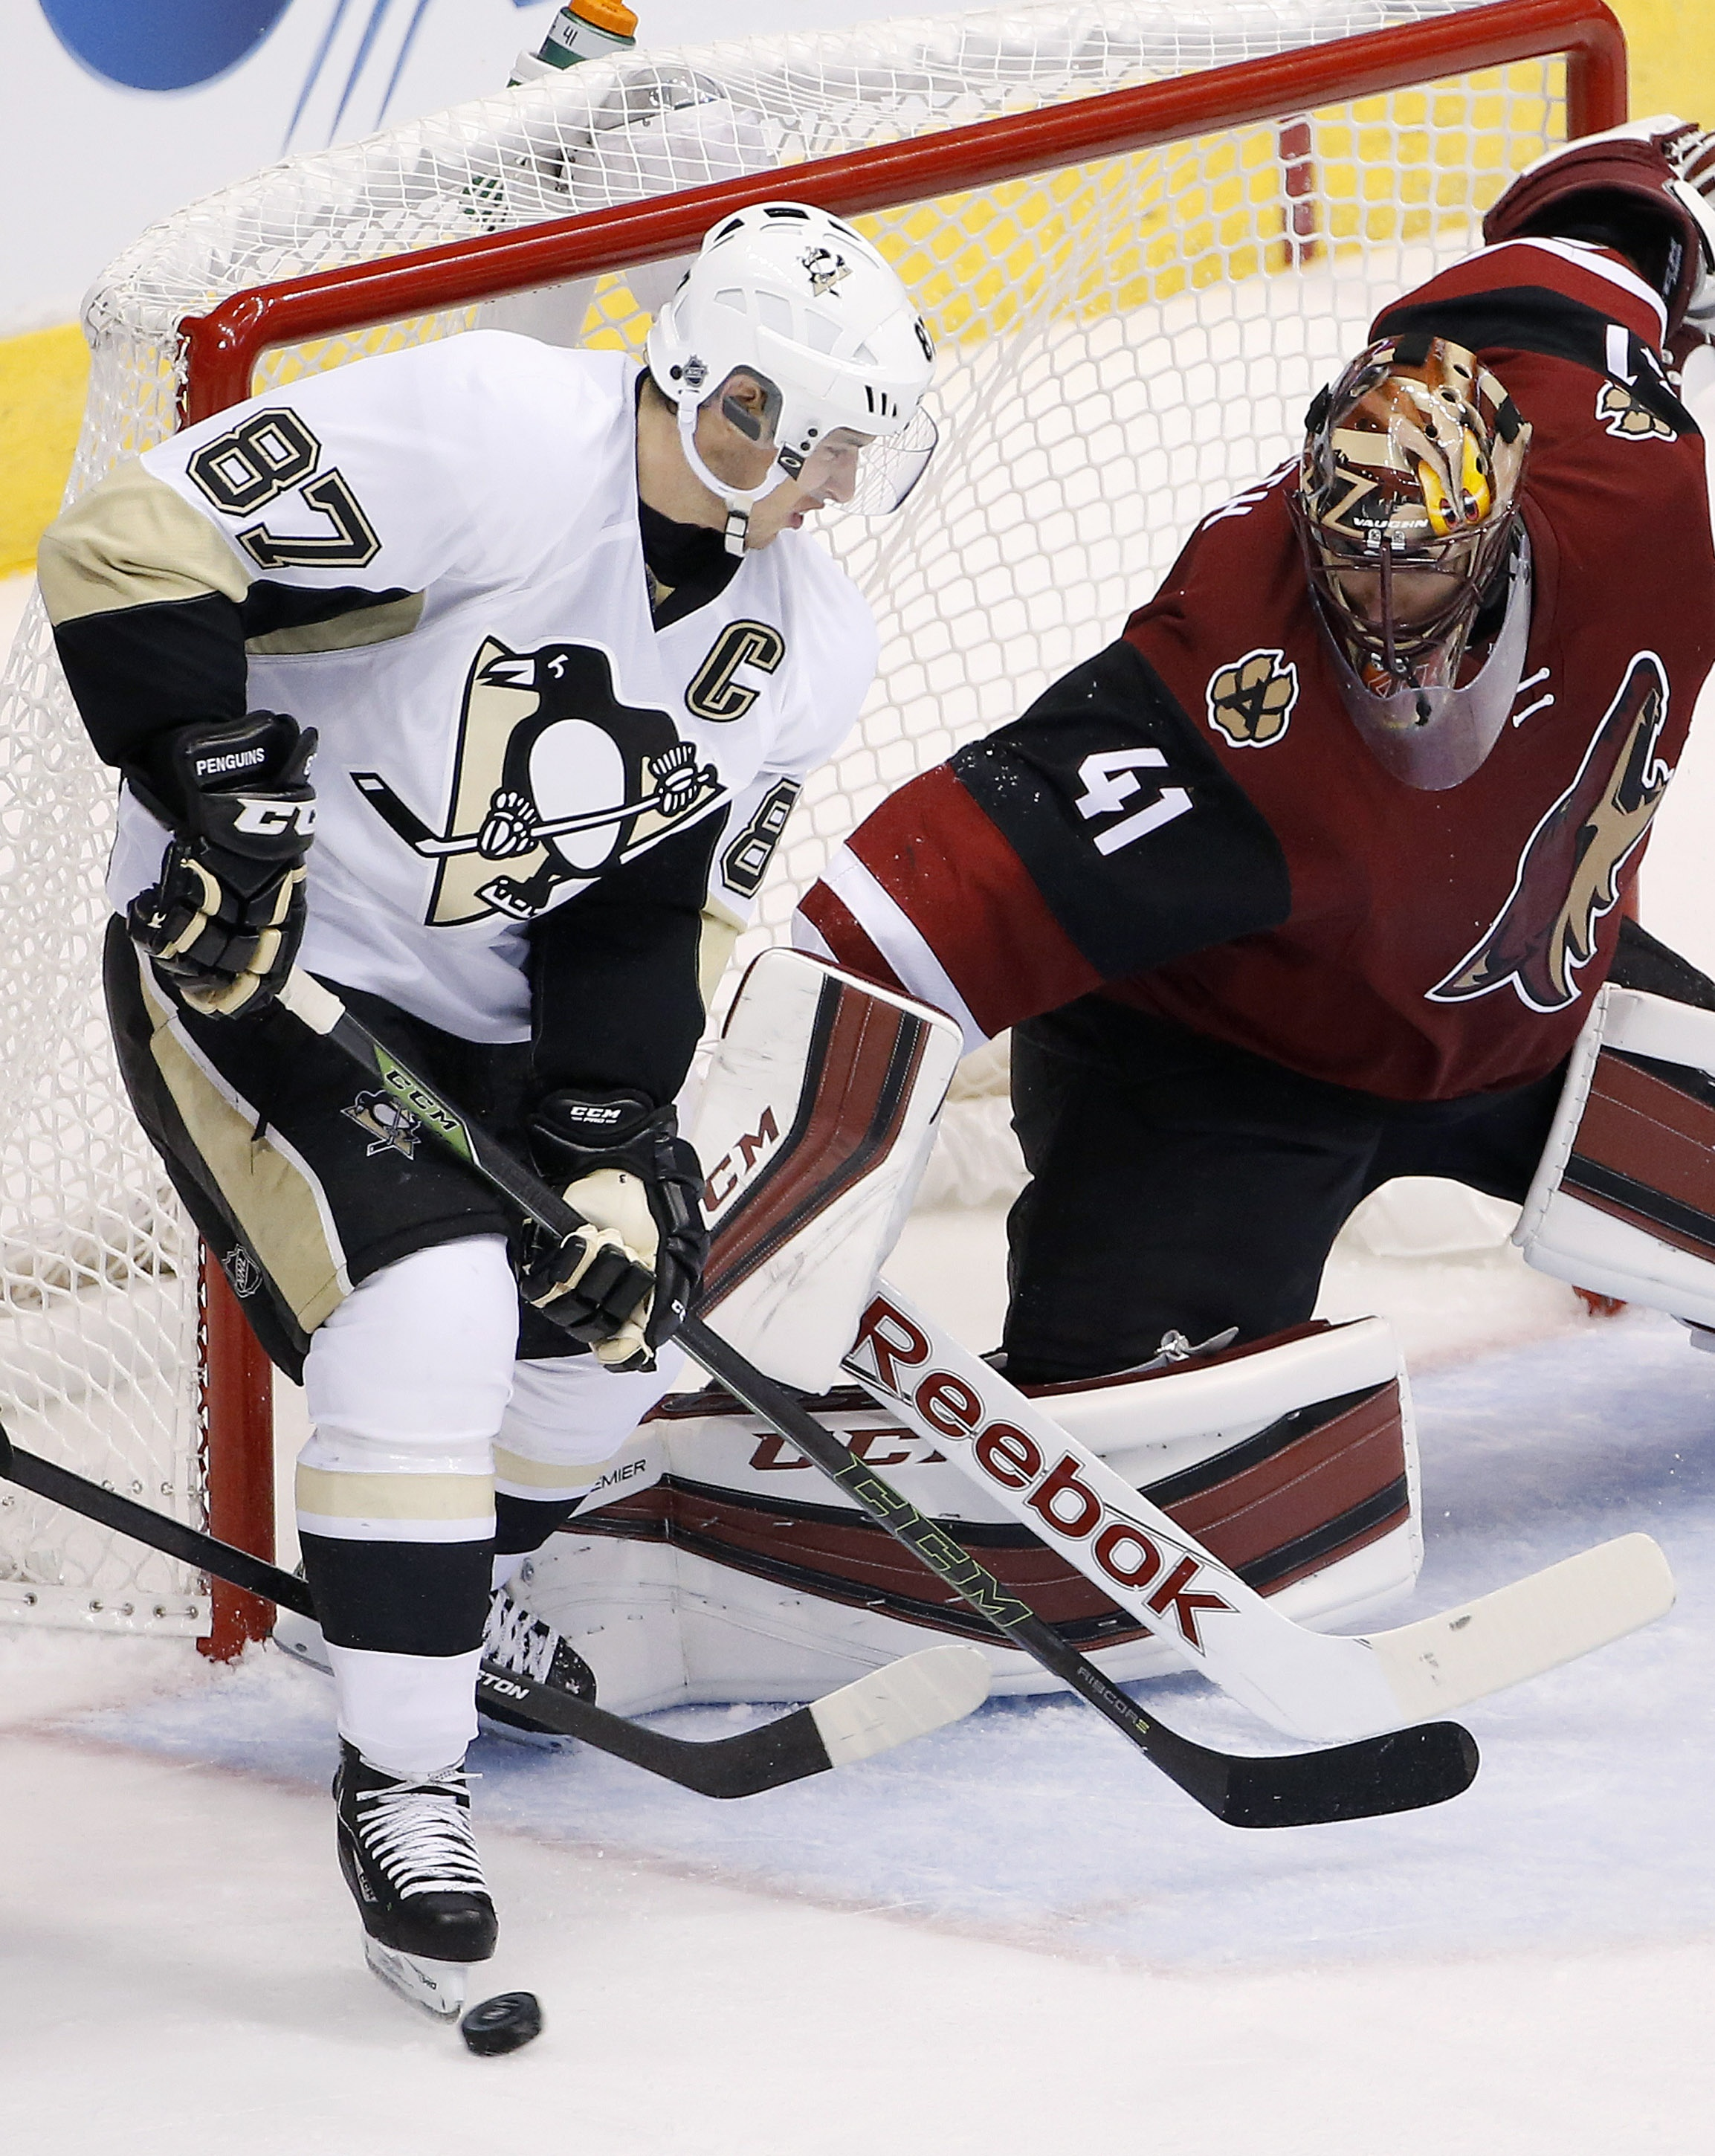 Arizona Coyotes' Mike Smith (41) makes a save in front of Pittsburgh Penguins' Sidney Crosby (87) during the third period of an NHL hockey game Saturday, Oct. 10, 2015, in Glendale, Ariz.  The Coyotes defeated the Penguins 2-1. (AP Photo/Ross D. Franklin)